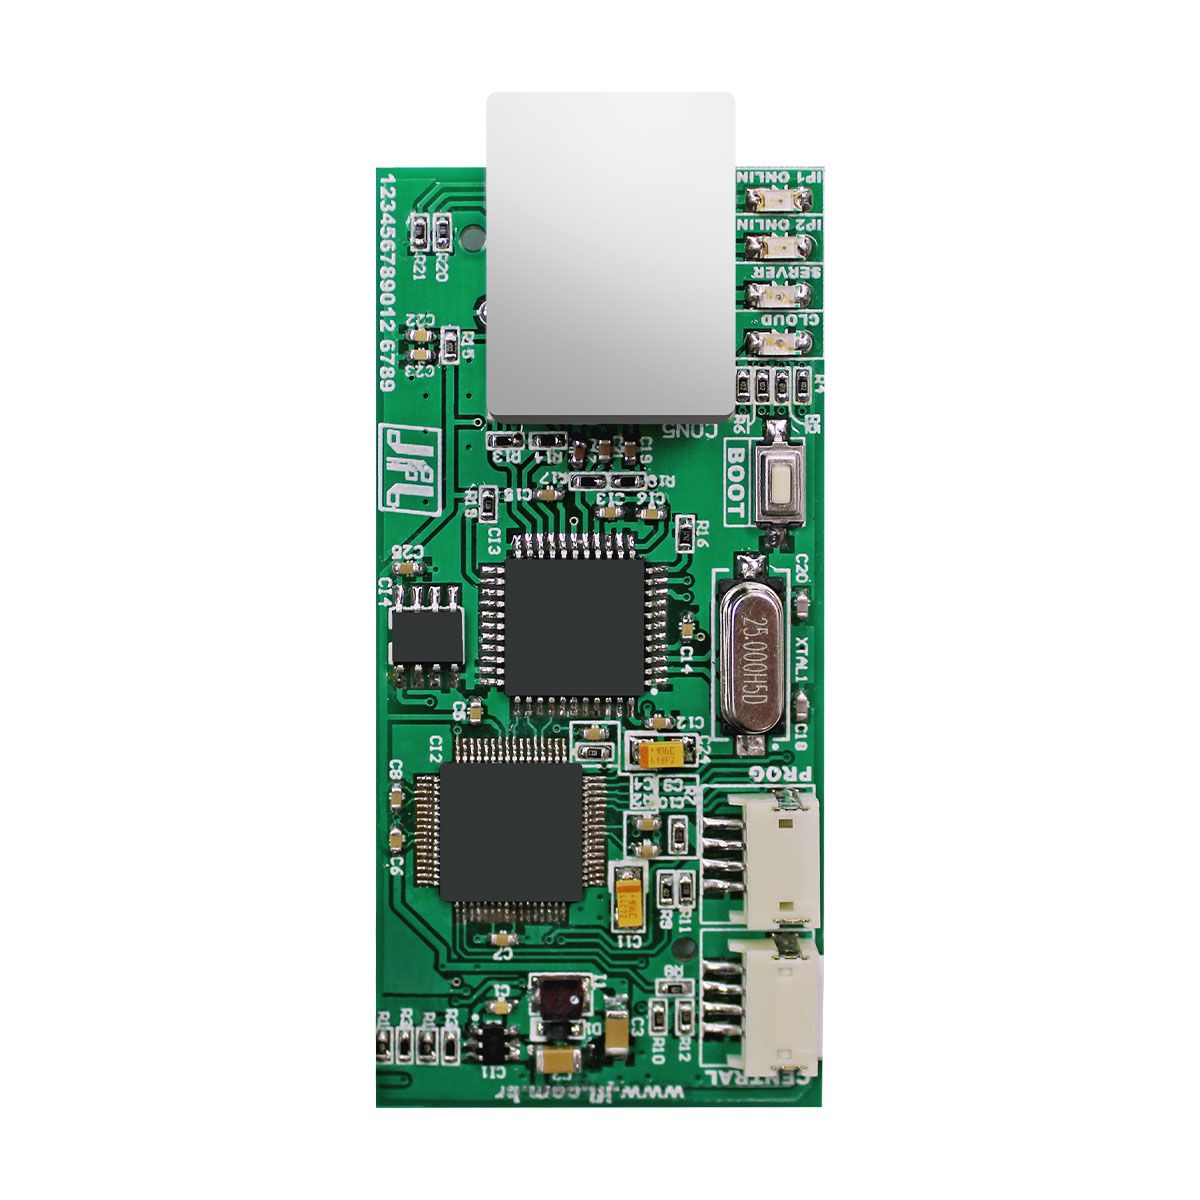 Central Active 20 Ultra Jfl Com Modulo Ethernet, Pgm e Mrf 01